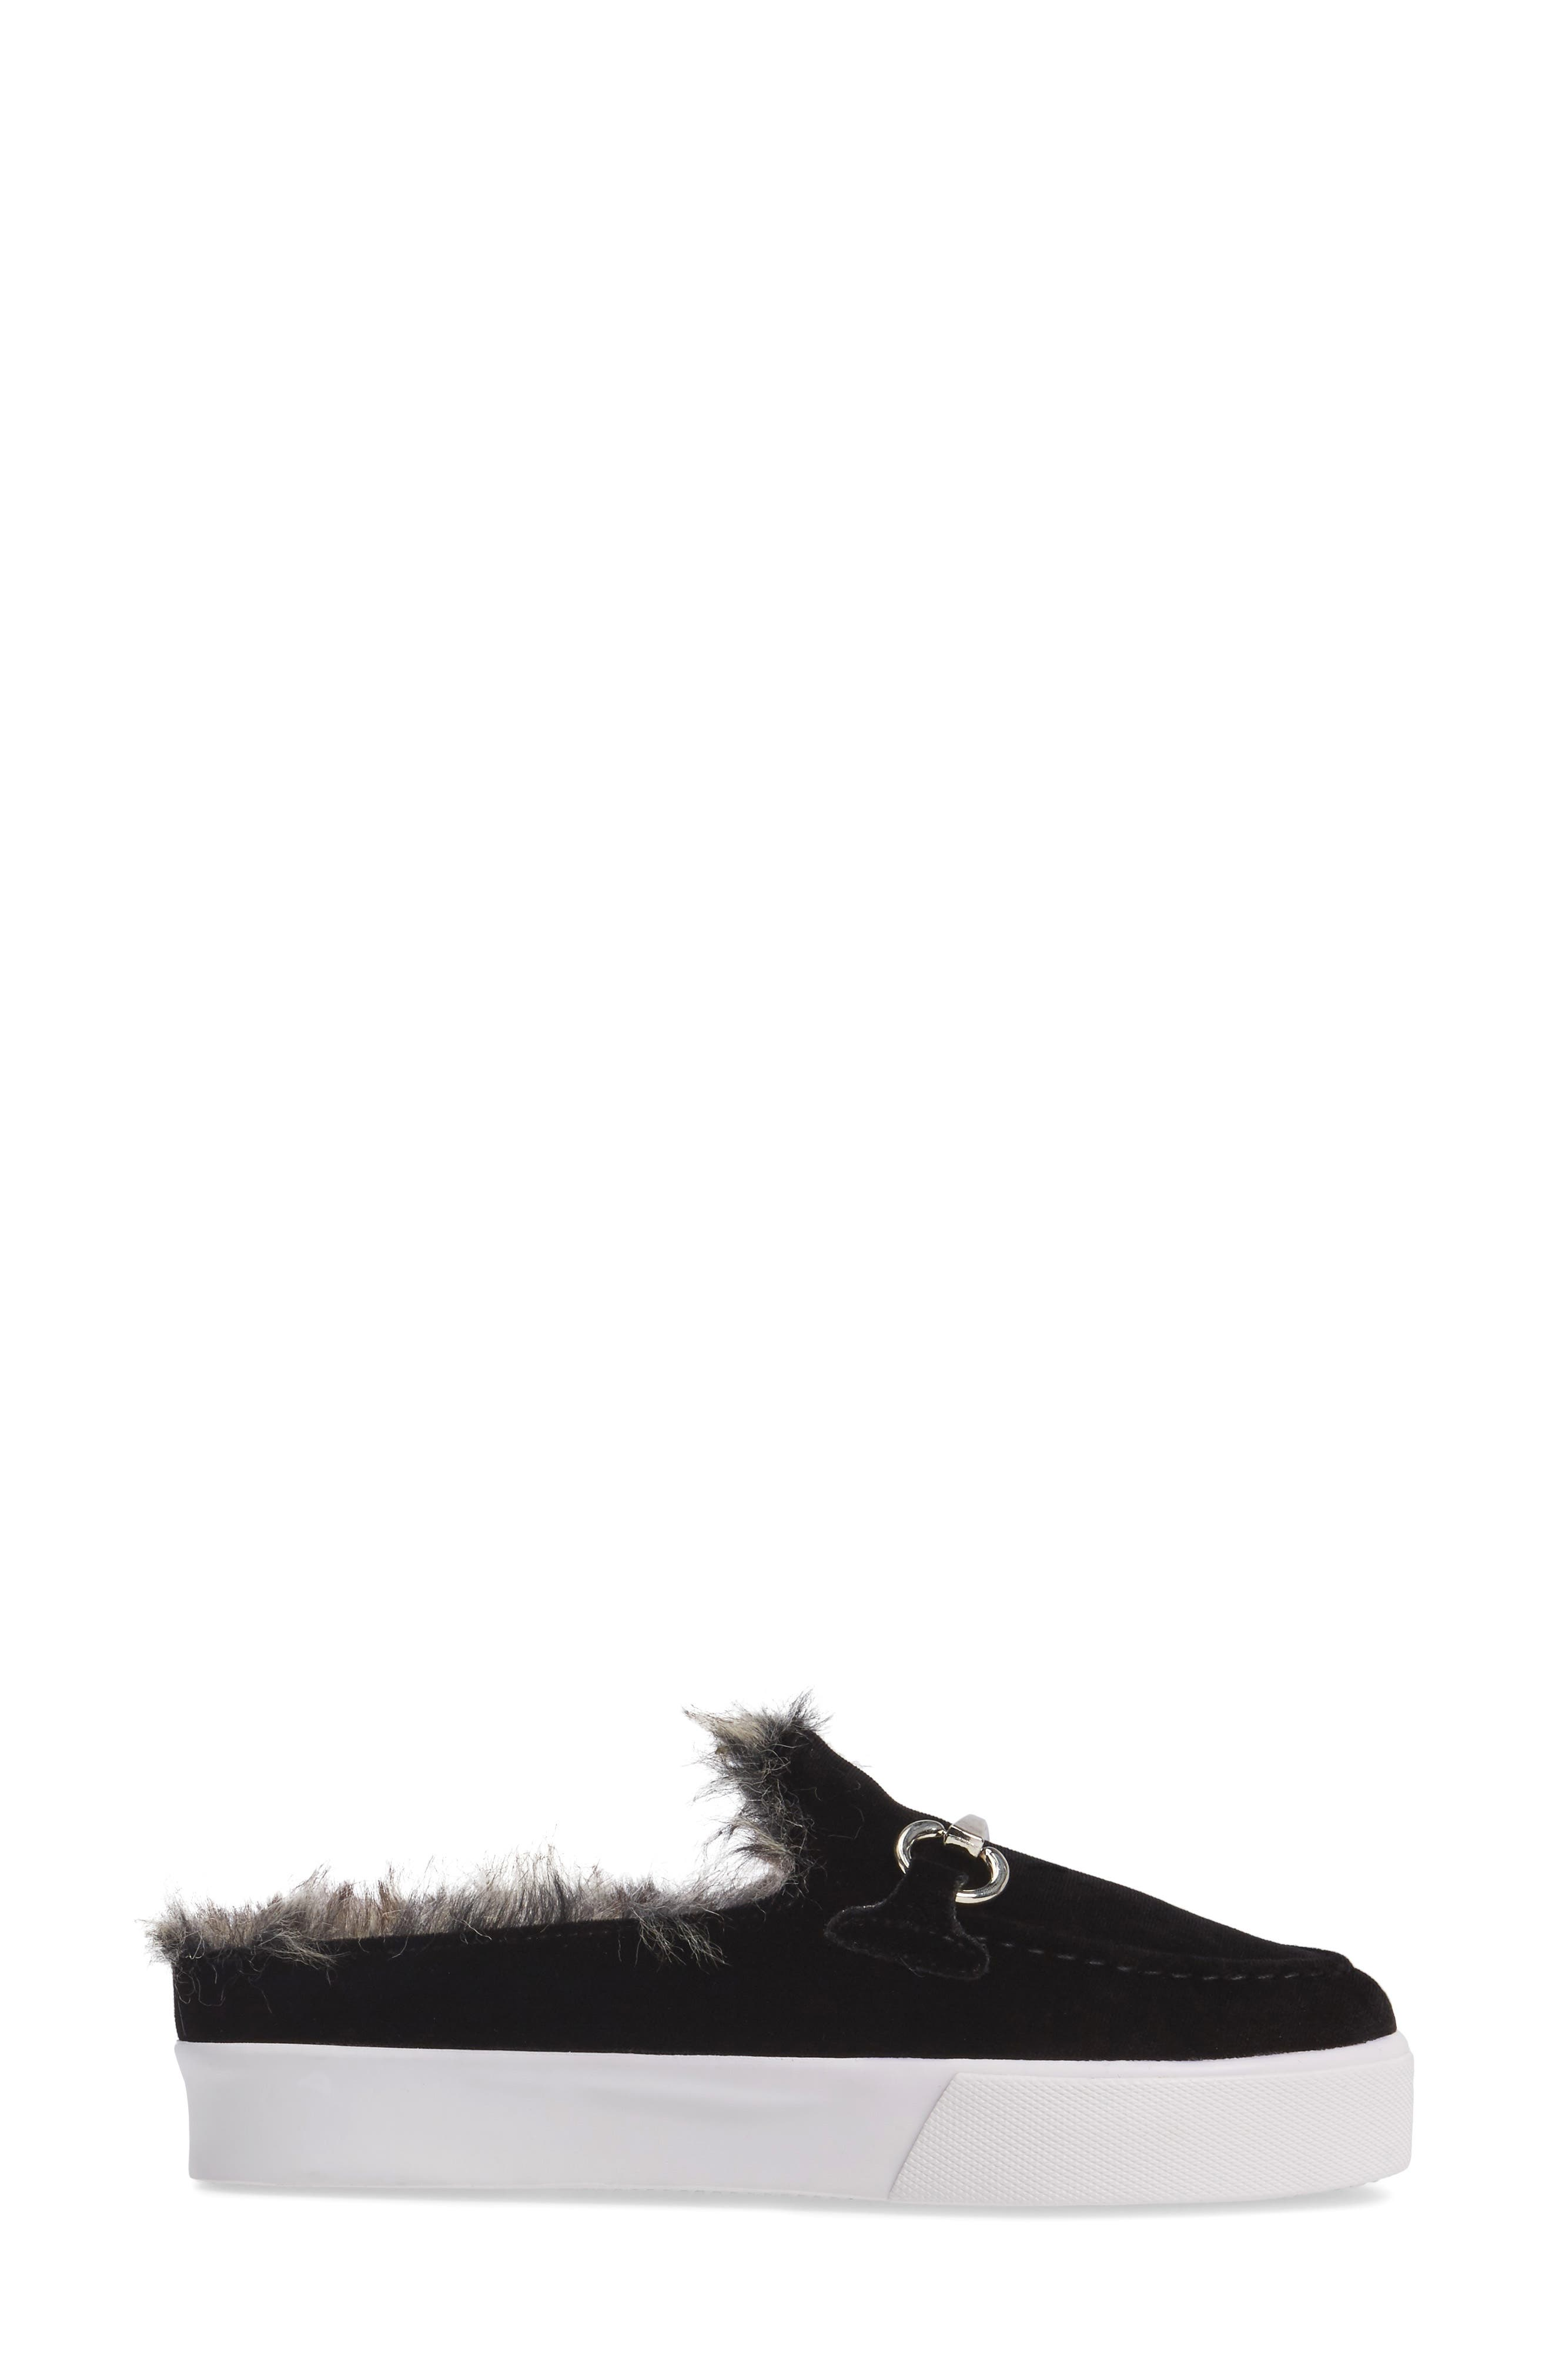 Tico Faux Fur Sneaker Mule,                             Alternate thumbnail 3, color,                             003